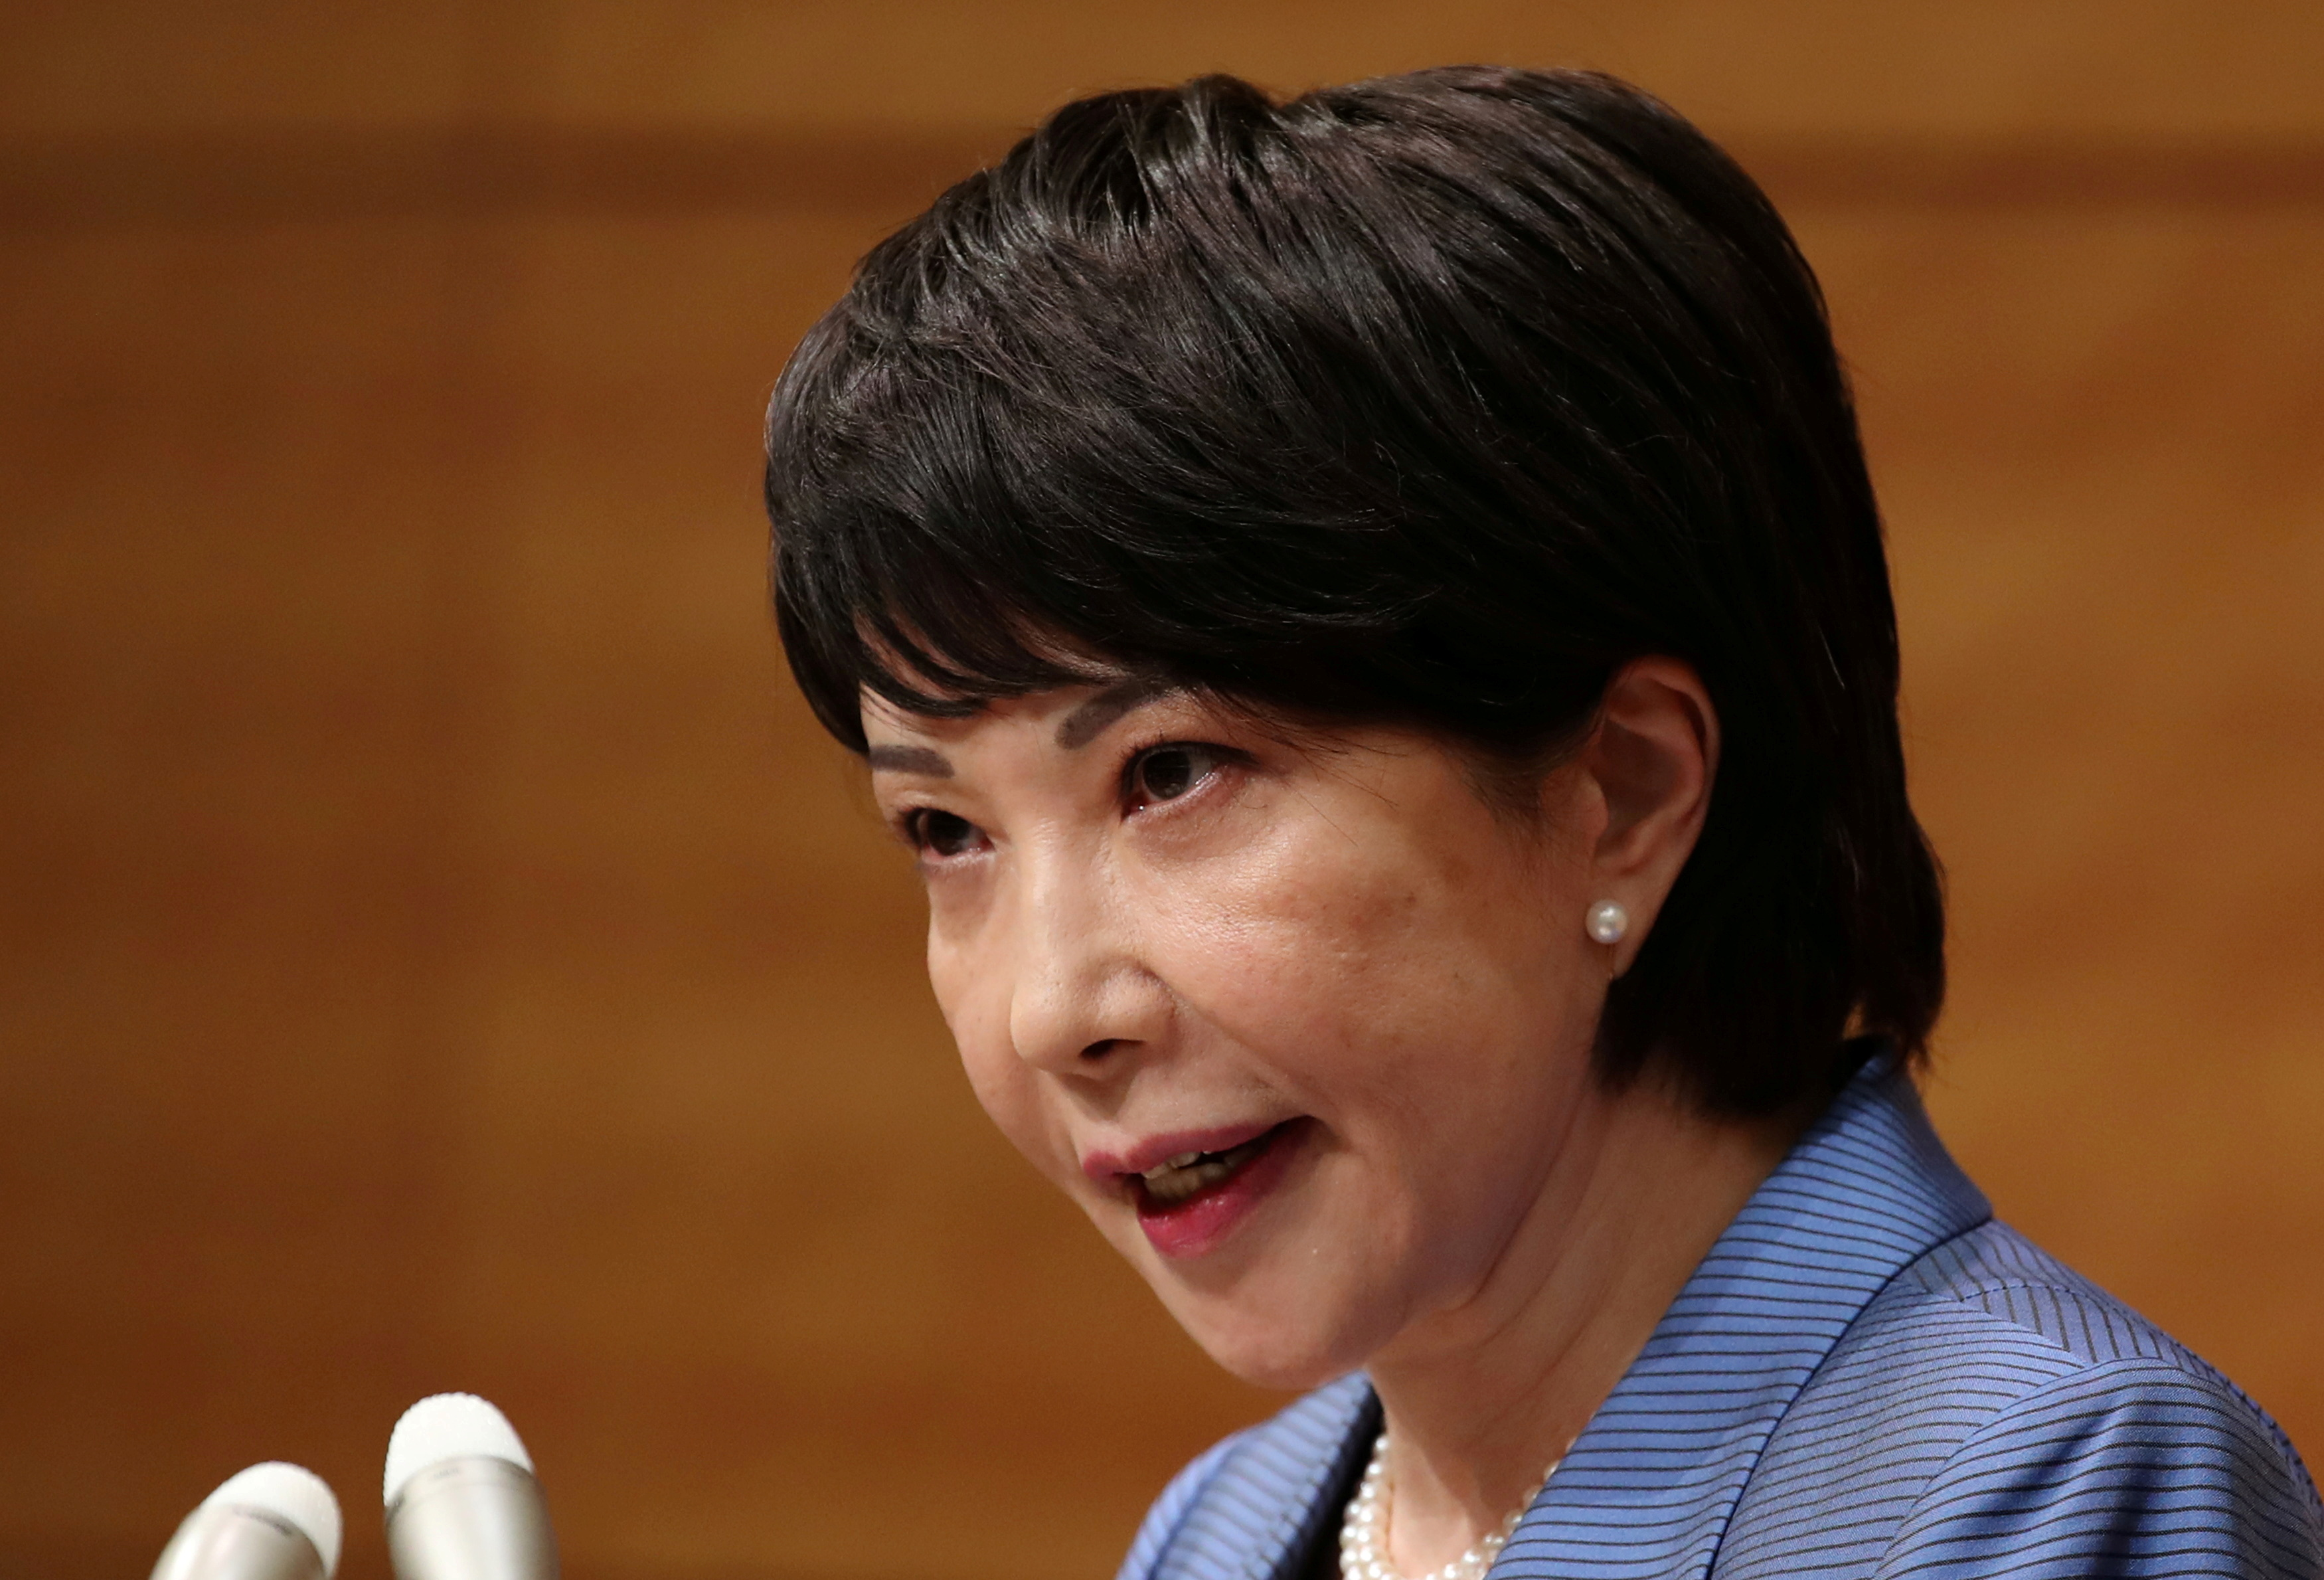 Japanese lawmaker Sanae Takaichi speaks at a news conference to announce her running in the ruling Liberal Democratic Party (LDP) leadership race to succeed Prime Minister Yoshihide Suga in Tokyo, Japan, September 8, 2021.  REUTERS/Kim Kyung-Hoon/File Photo